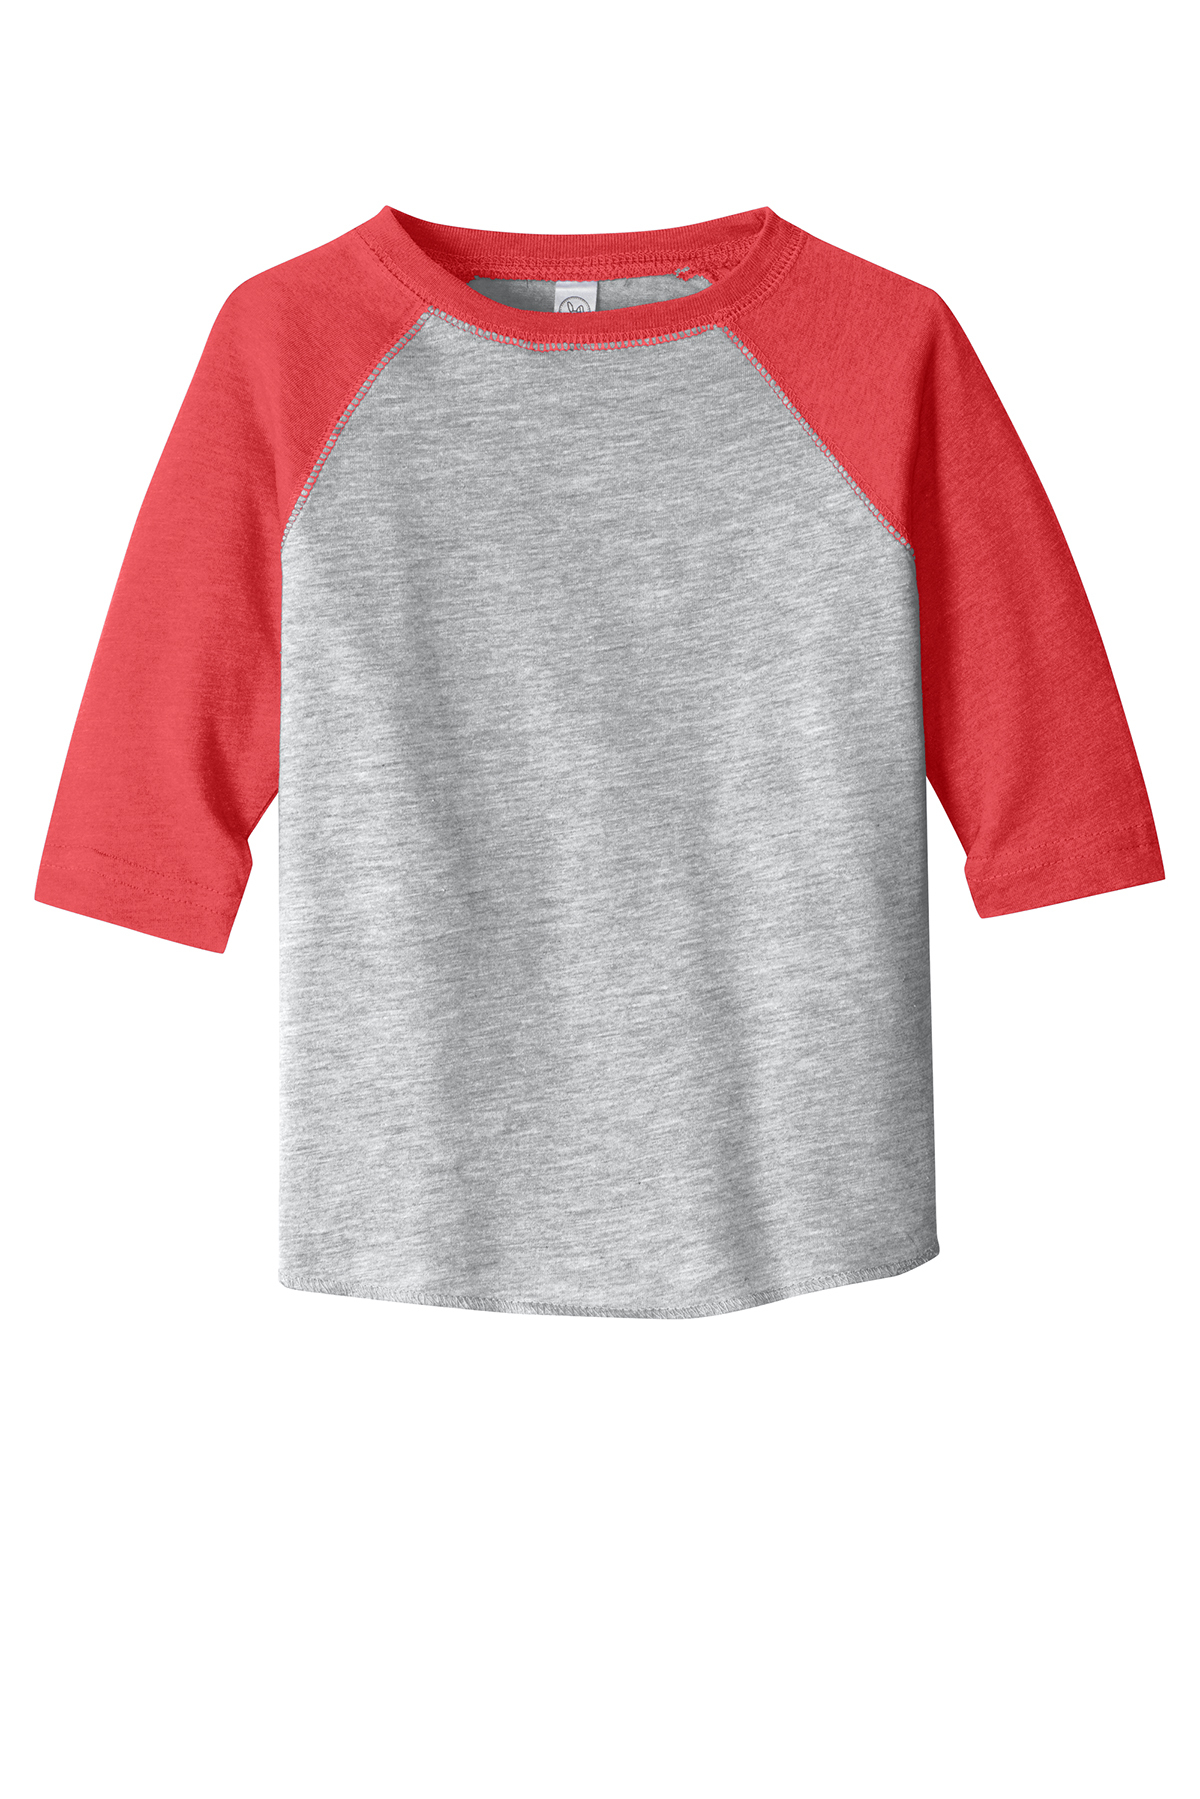 c20687838 ... Rabbit Skins™ Toddler Baseball Fine Jersey Tee. A maximum of 8 logos  have been uploaded. Please remove a logo from My Logos to continue